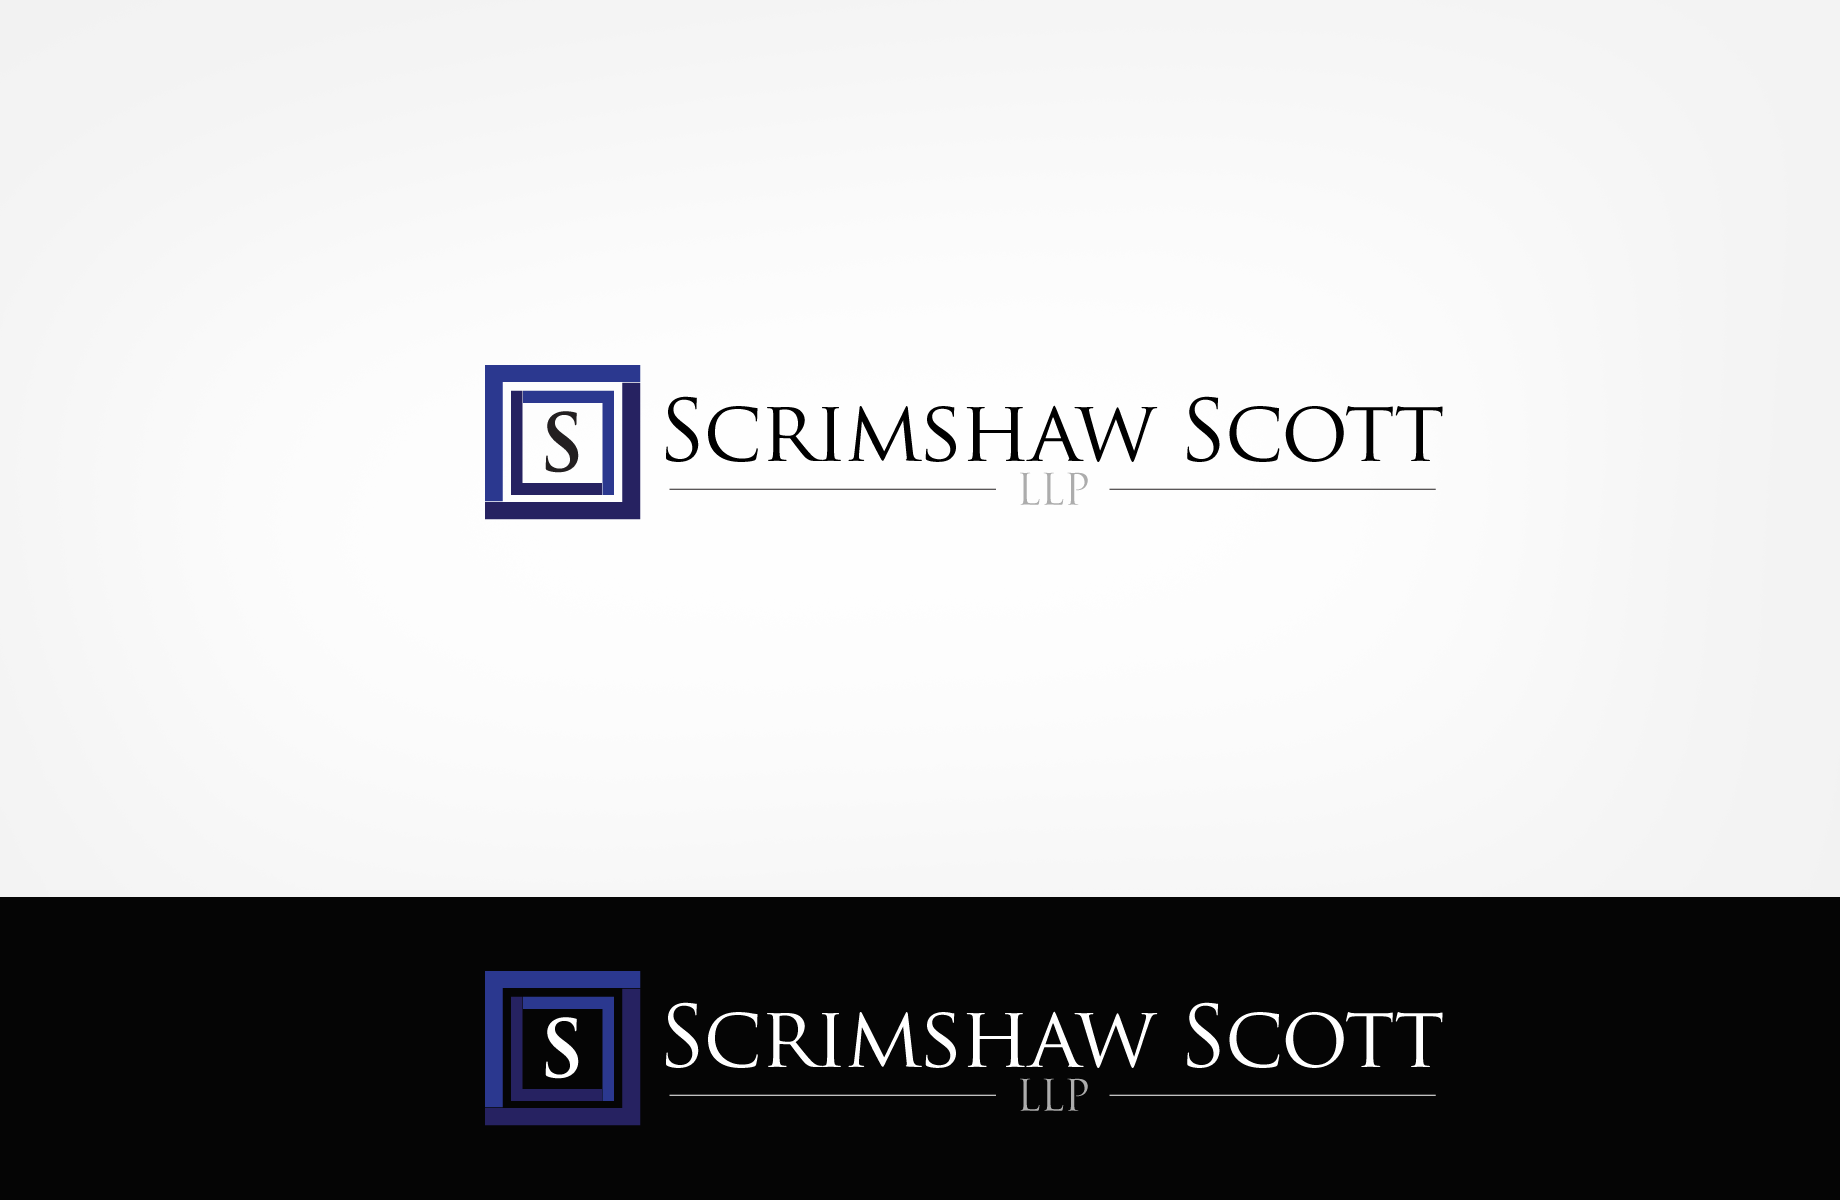 Logo Design by Jan Chua - Entry No. 81 in the Logo Design Contest Creative Logo Design for Scrimshaw Scott LLP.